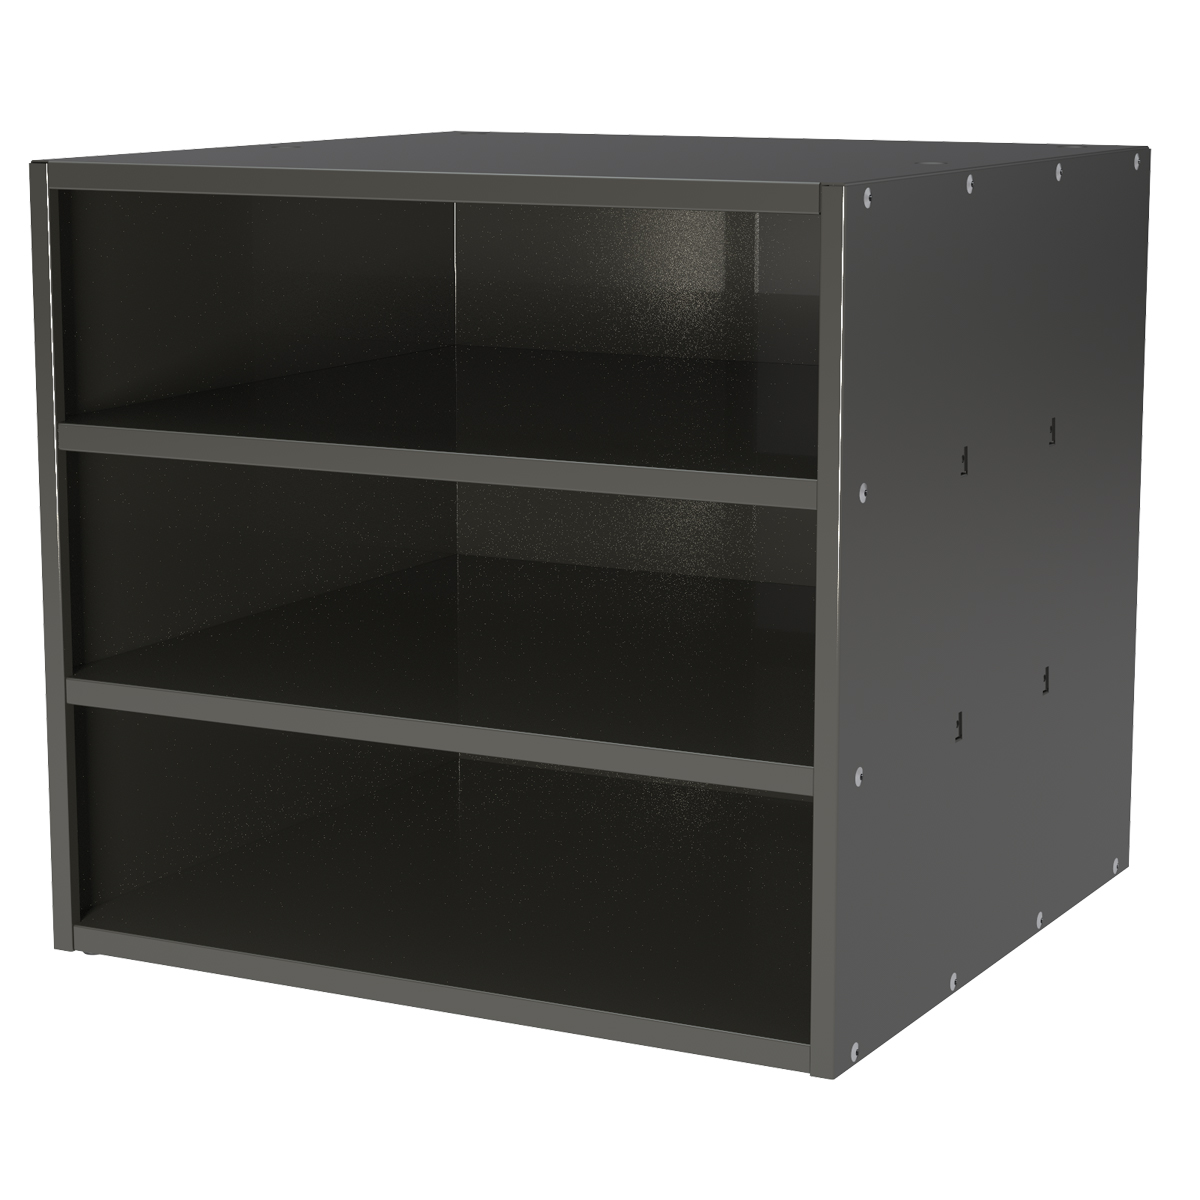 Item DISCONTINUED by Manufacturer.  Modular Cabinet, 18x17x16, no Drawers, Gray (AD1817C).  This item sold in carton quantities of 1.